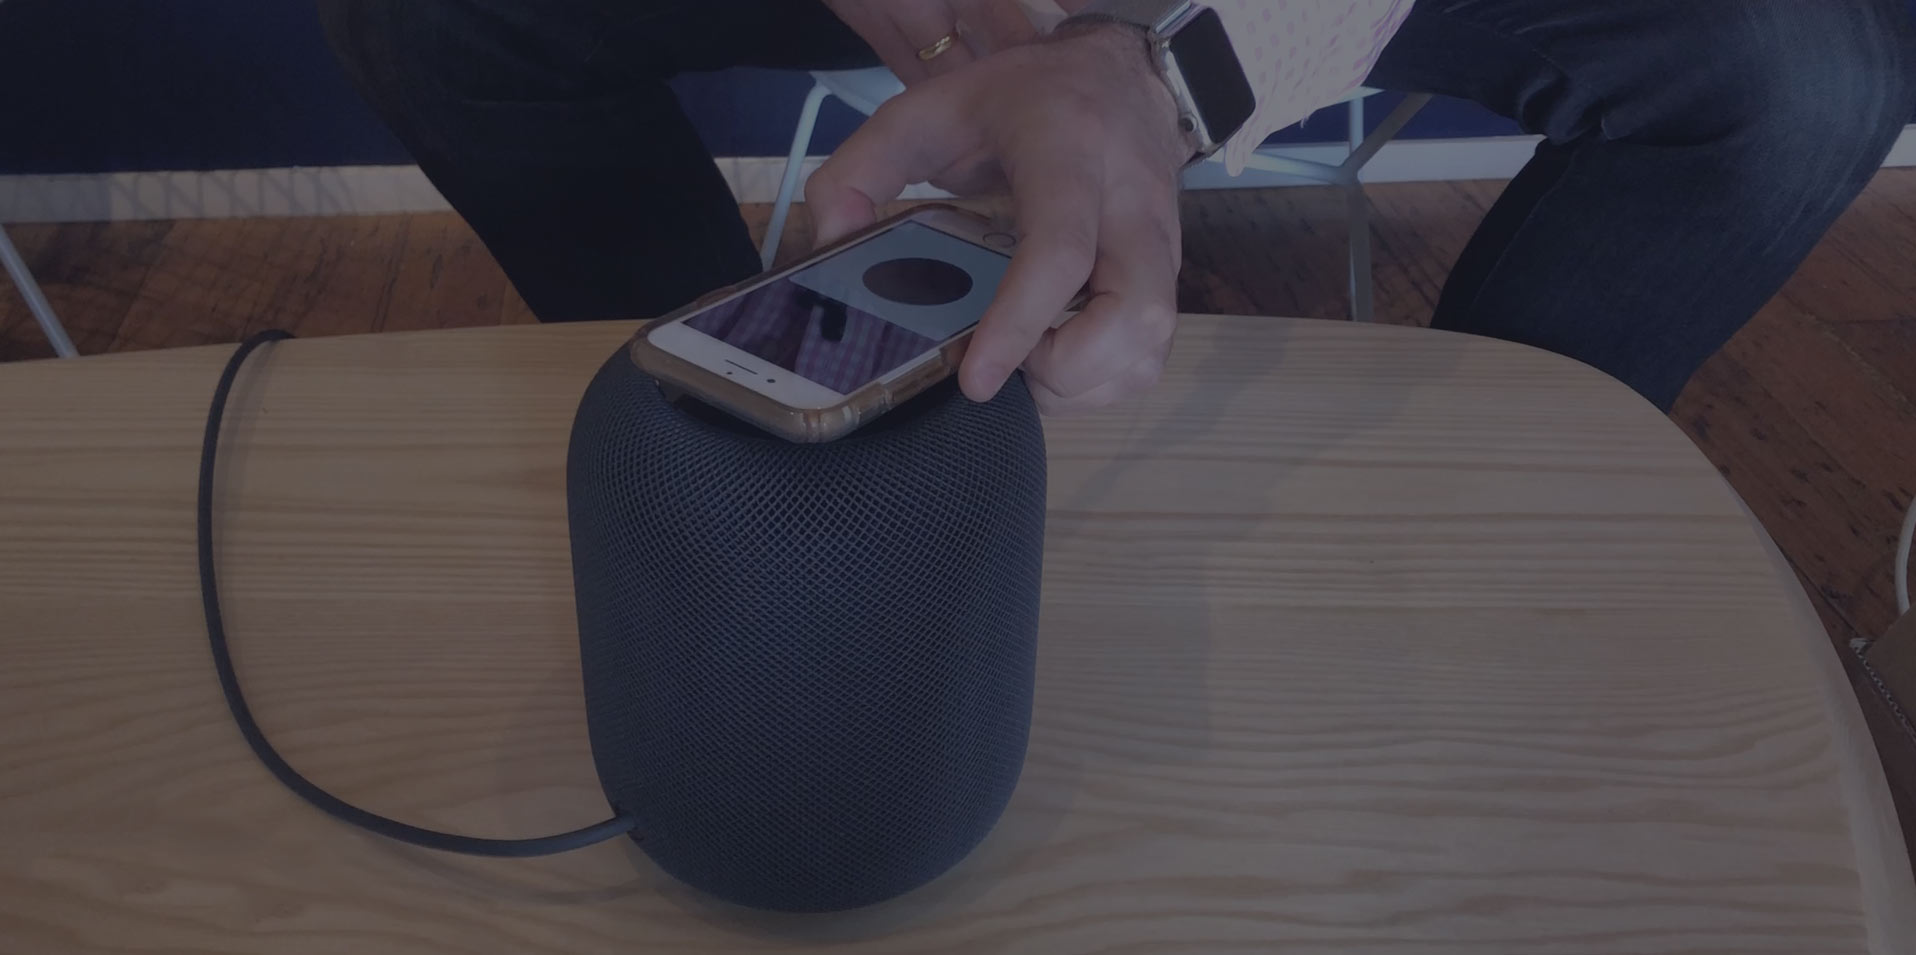 Unboxing of the new Apple HomePod